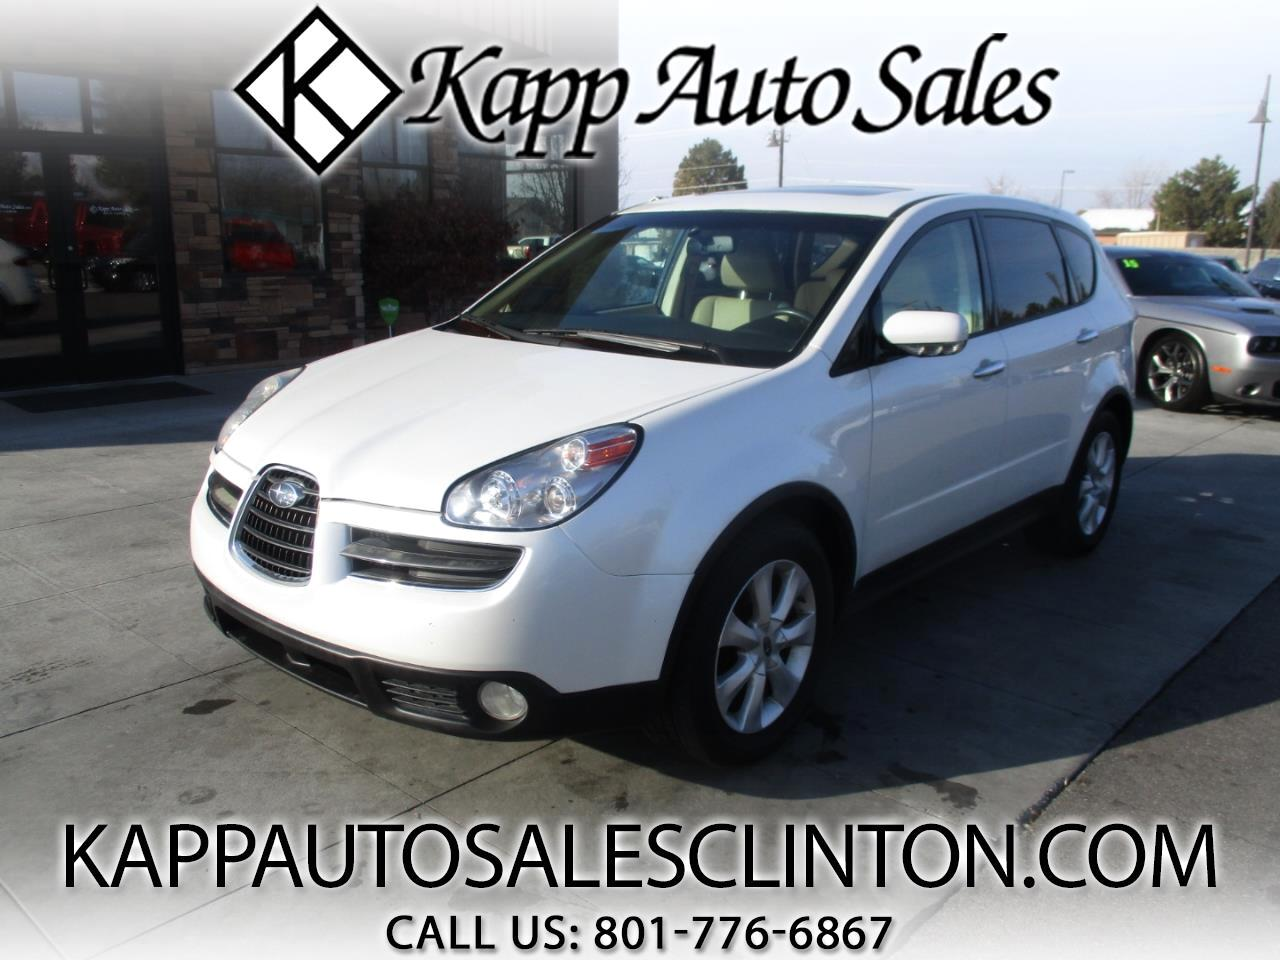 2007 Subaru B9 Tribeca AWD 4dr 5-Pass Ltd Beige Int